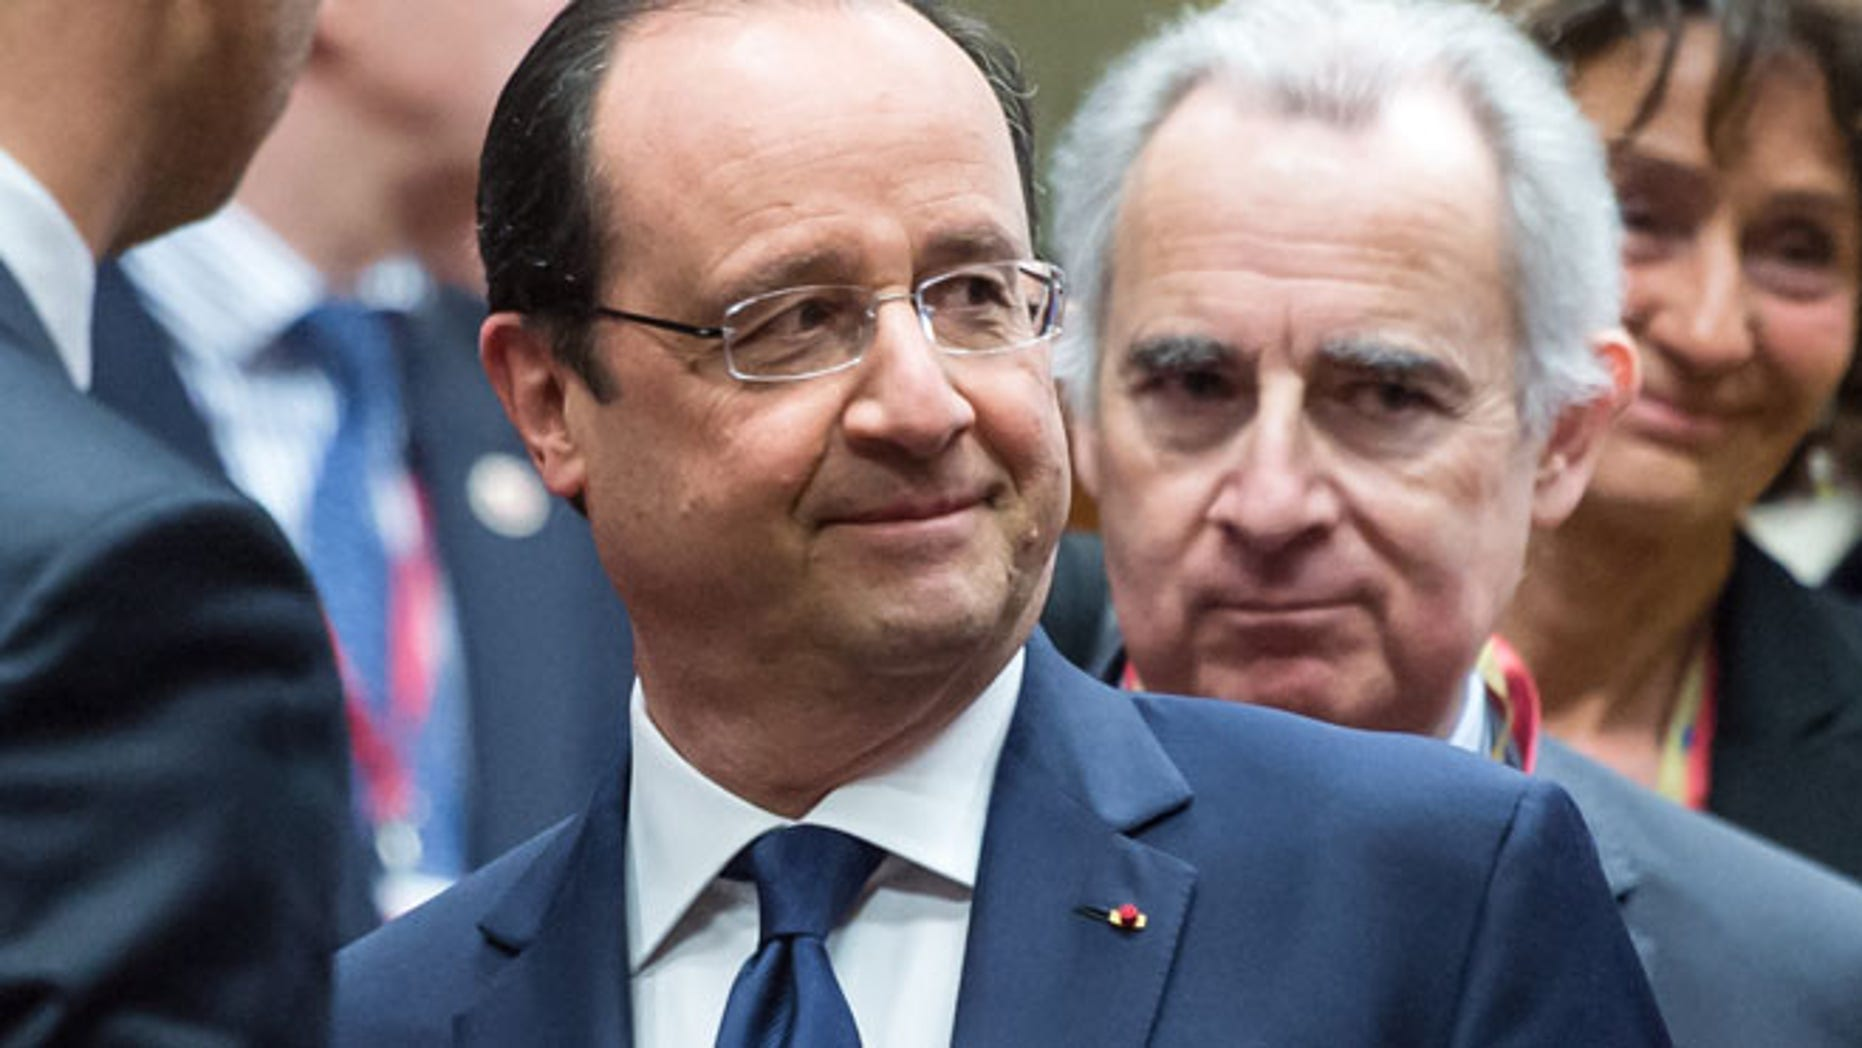 March 6, 2014: French President Francois Hollande, center, speaks with Ukraine's Prime Minister Arseniy Yatsenyuk, left, during a round table meeting at an EU summit in Brussels.